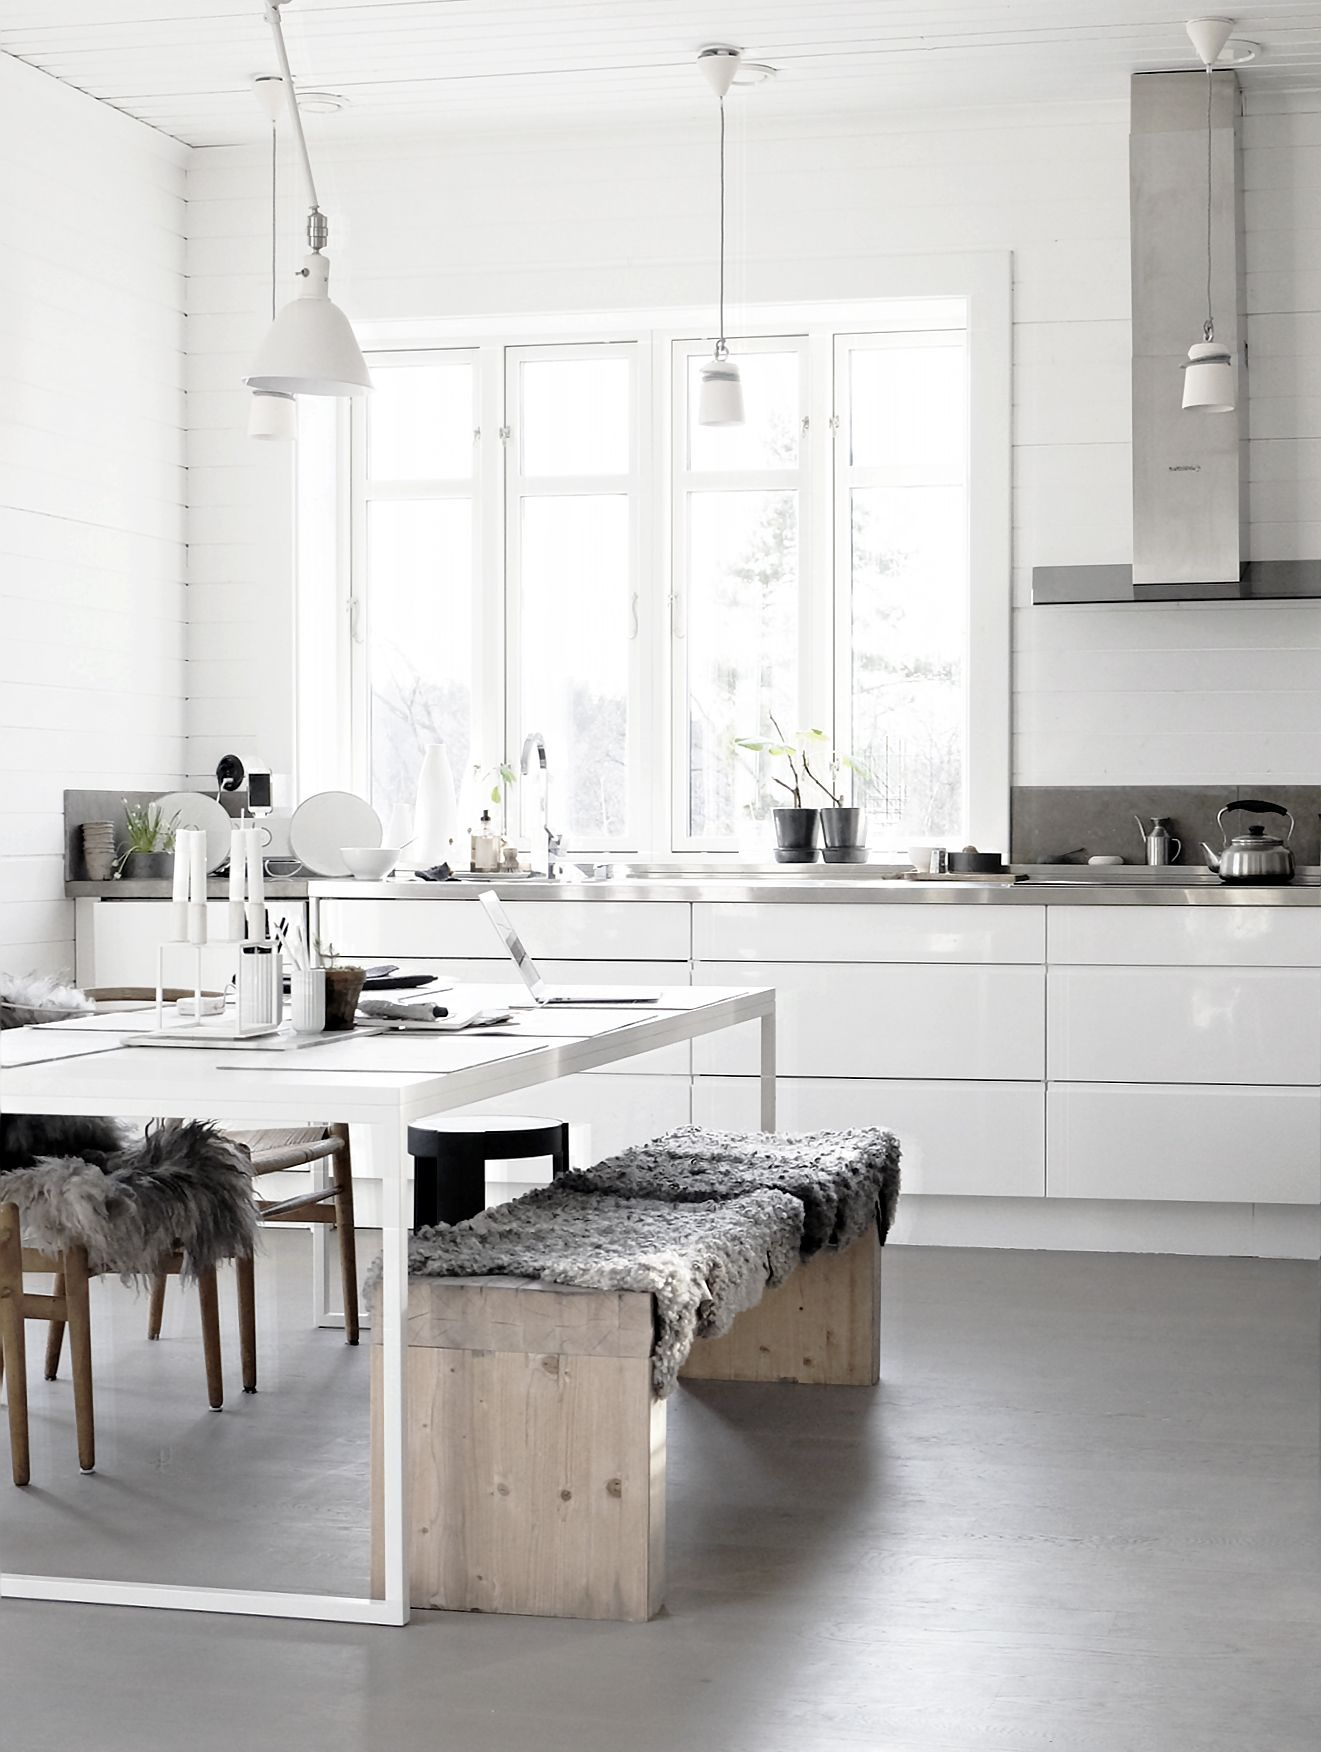 Home interior design kitchen weekend lovin  bench fur and scandinavian kitchen